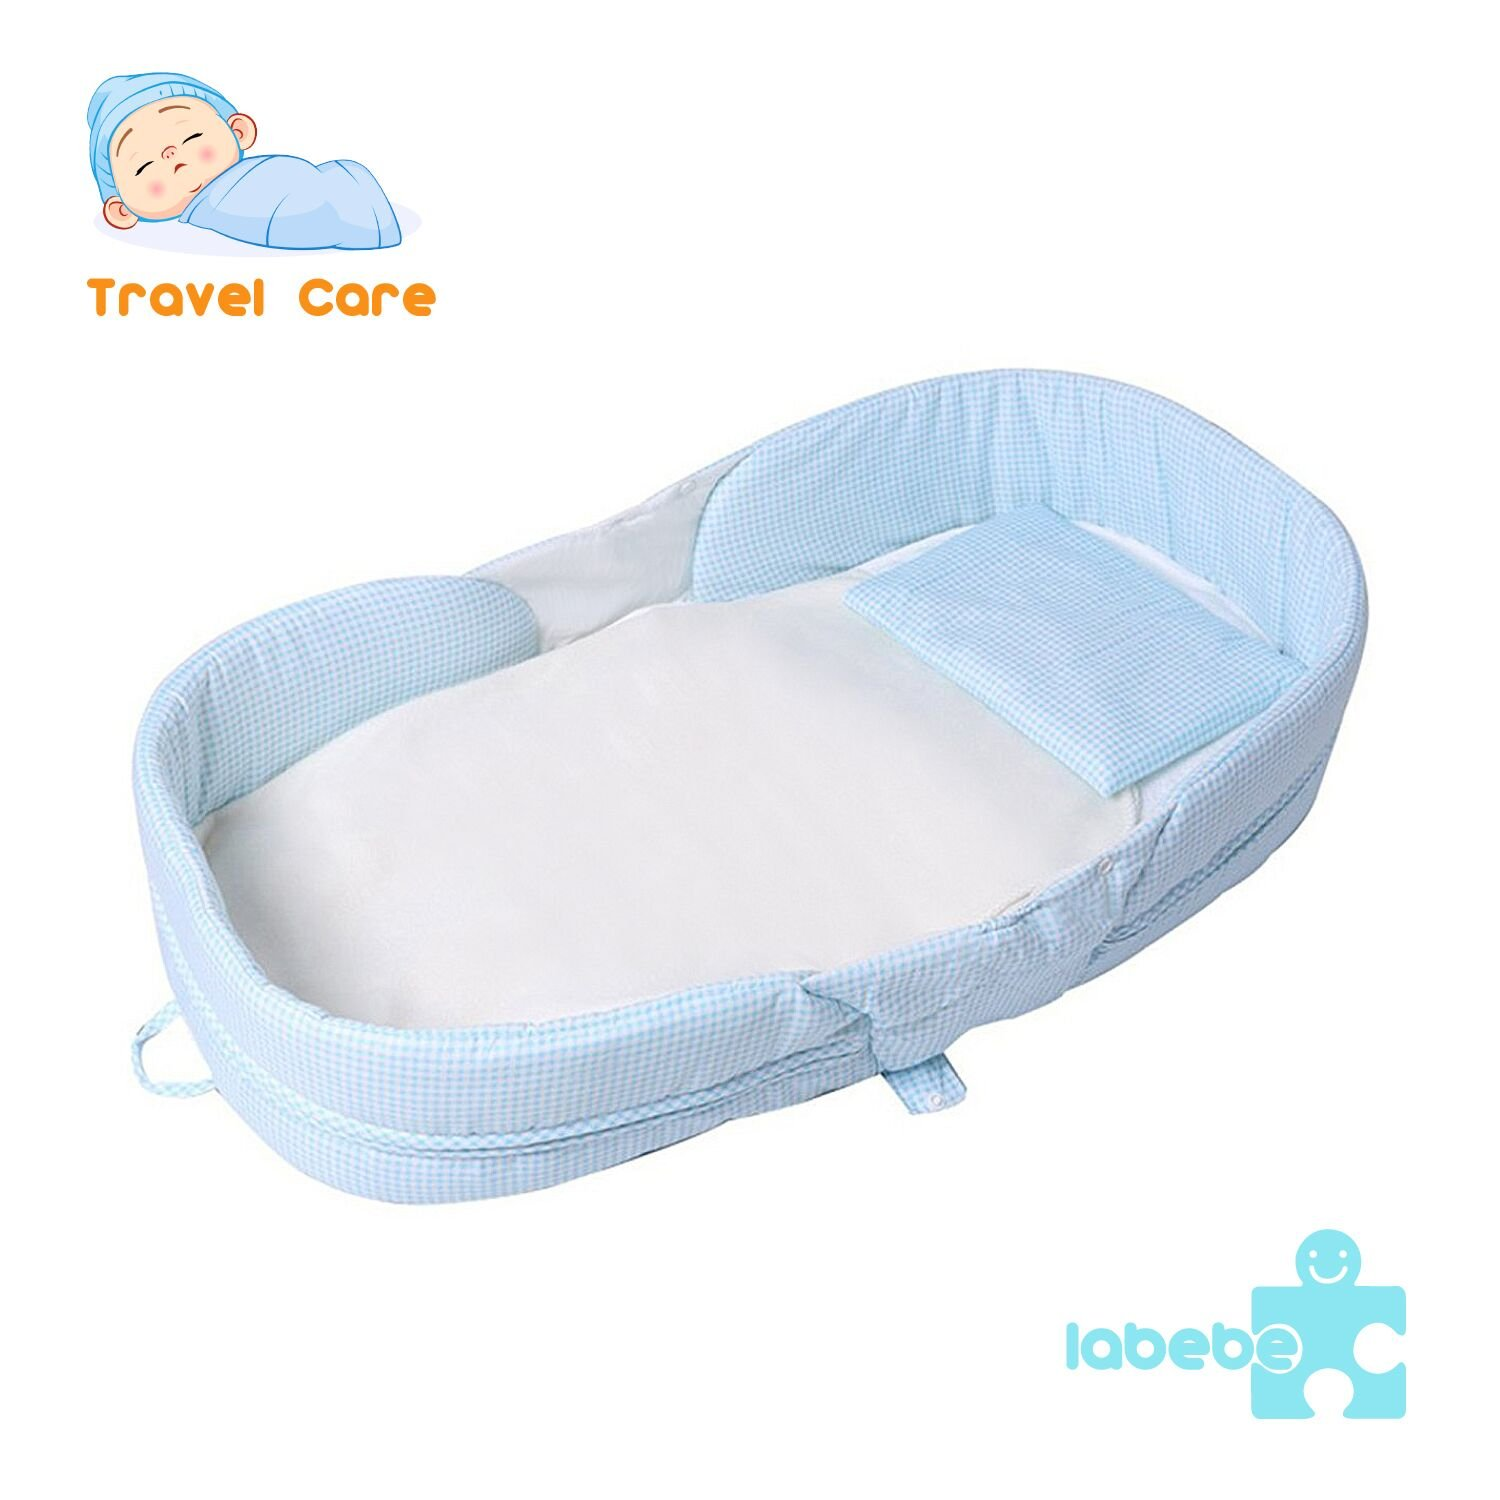 Labebe Baby Travel Bed Set, Sky Blue Grid Travel Cot for Babys up to 1 Year, Kids Travel Bed Sheet/Airplane Travel Bed Spread/Toddler Travel Bed Accessories/Portable Travel Bed Pillow/Travel Bed Cover